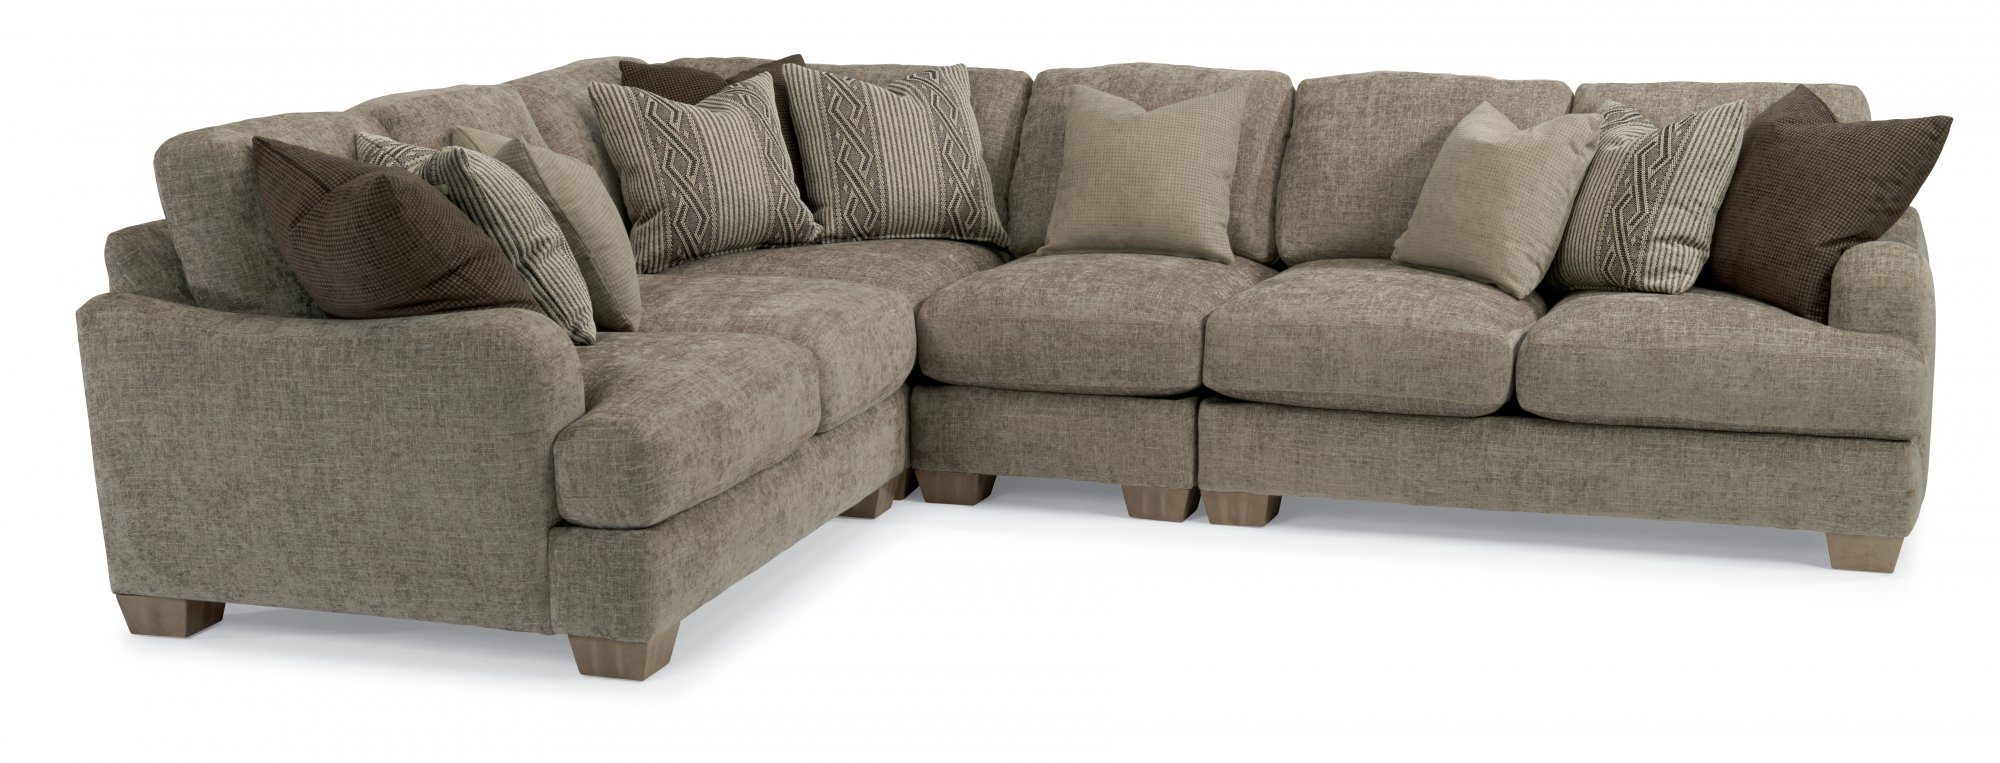 reclining leather sofabed sofa flexsteel prices size dealers sectional full recliner furniture oversized sofas of